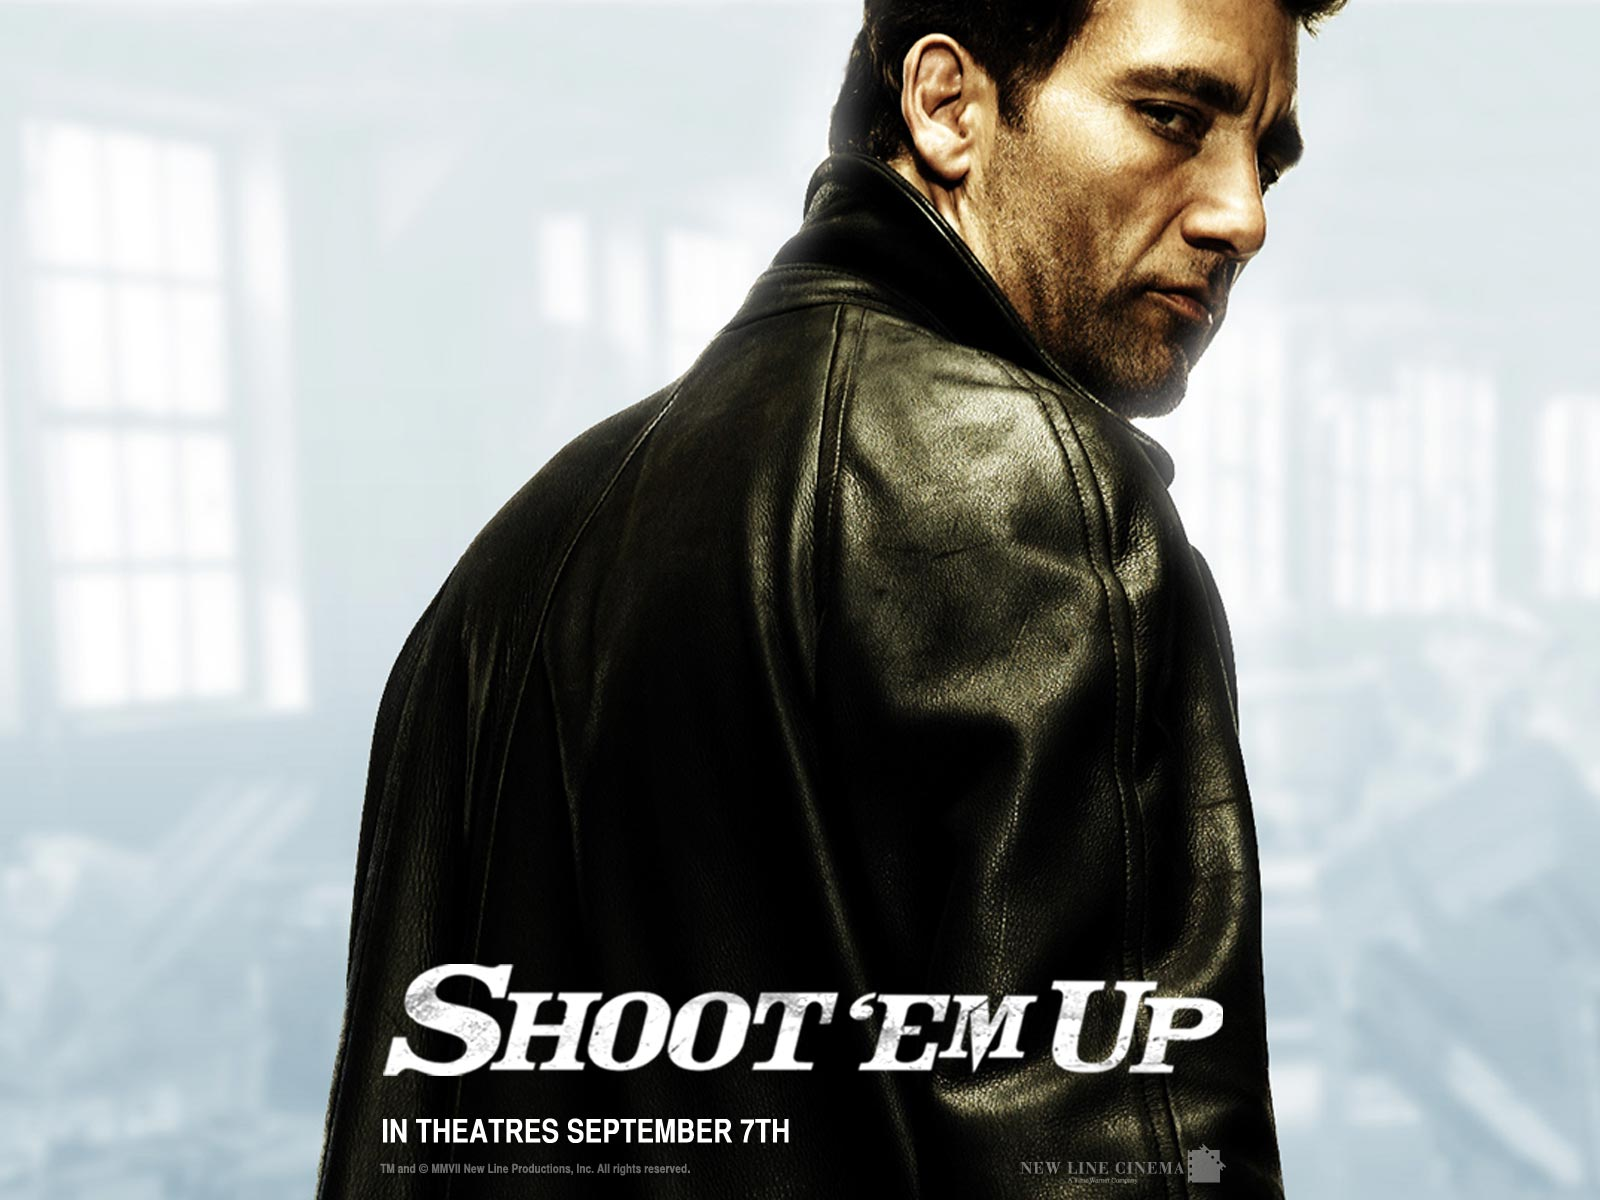 http://2.bp.blogspot.com/_V6TVDECge74/TBnZ4kIooUI/AAAAAAAAAi4/q6esSXfFSgM/s1600/Clive_Owen_in_Shoot_Em_Up_Wallpaper_3_1280.jpg